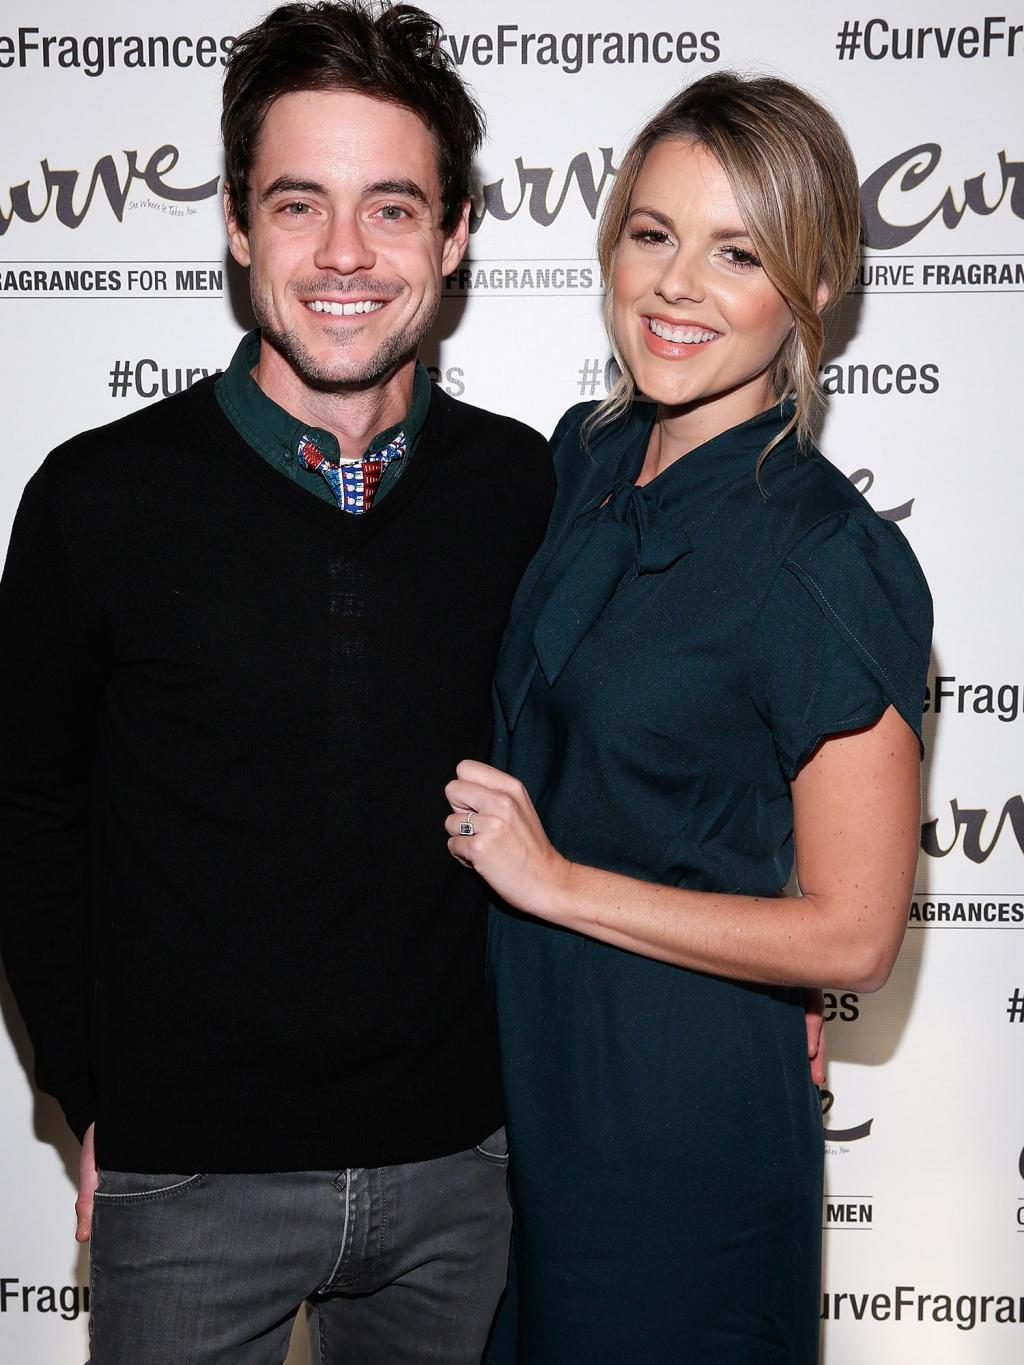 Former Bachelorette Star Ali Fedotowsky Marries Kevin Manno